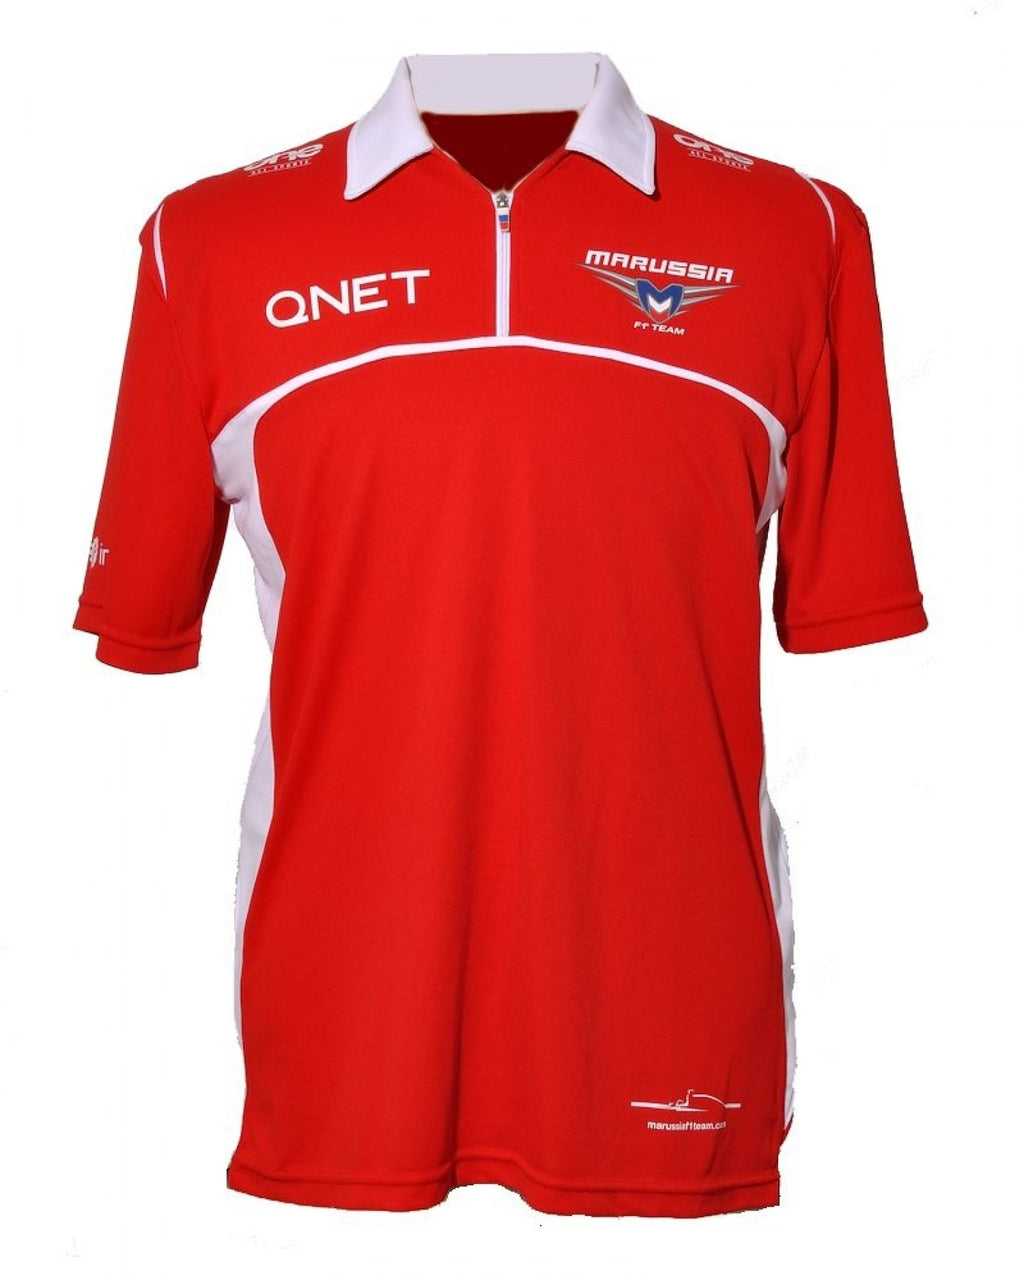 MEN'S RACE POLO SHIRT - One All Sports